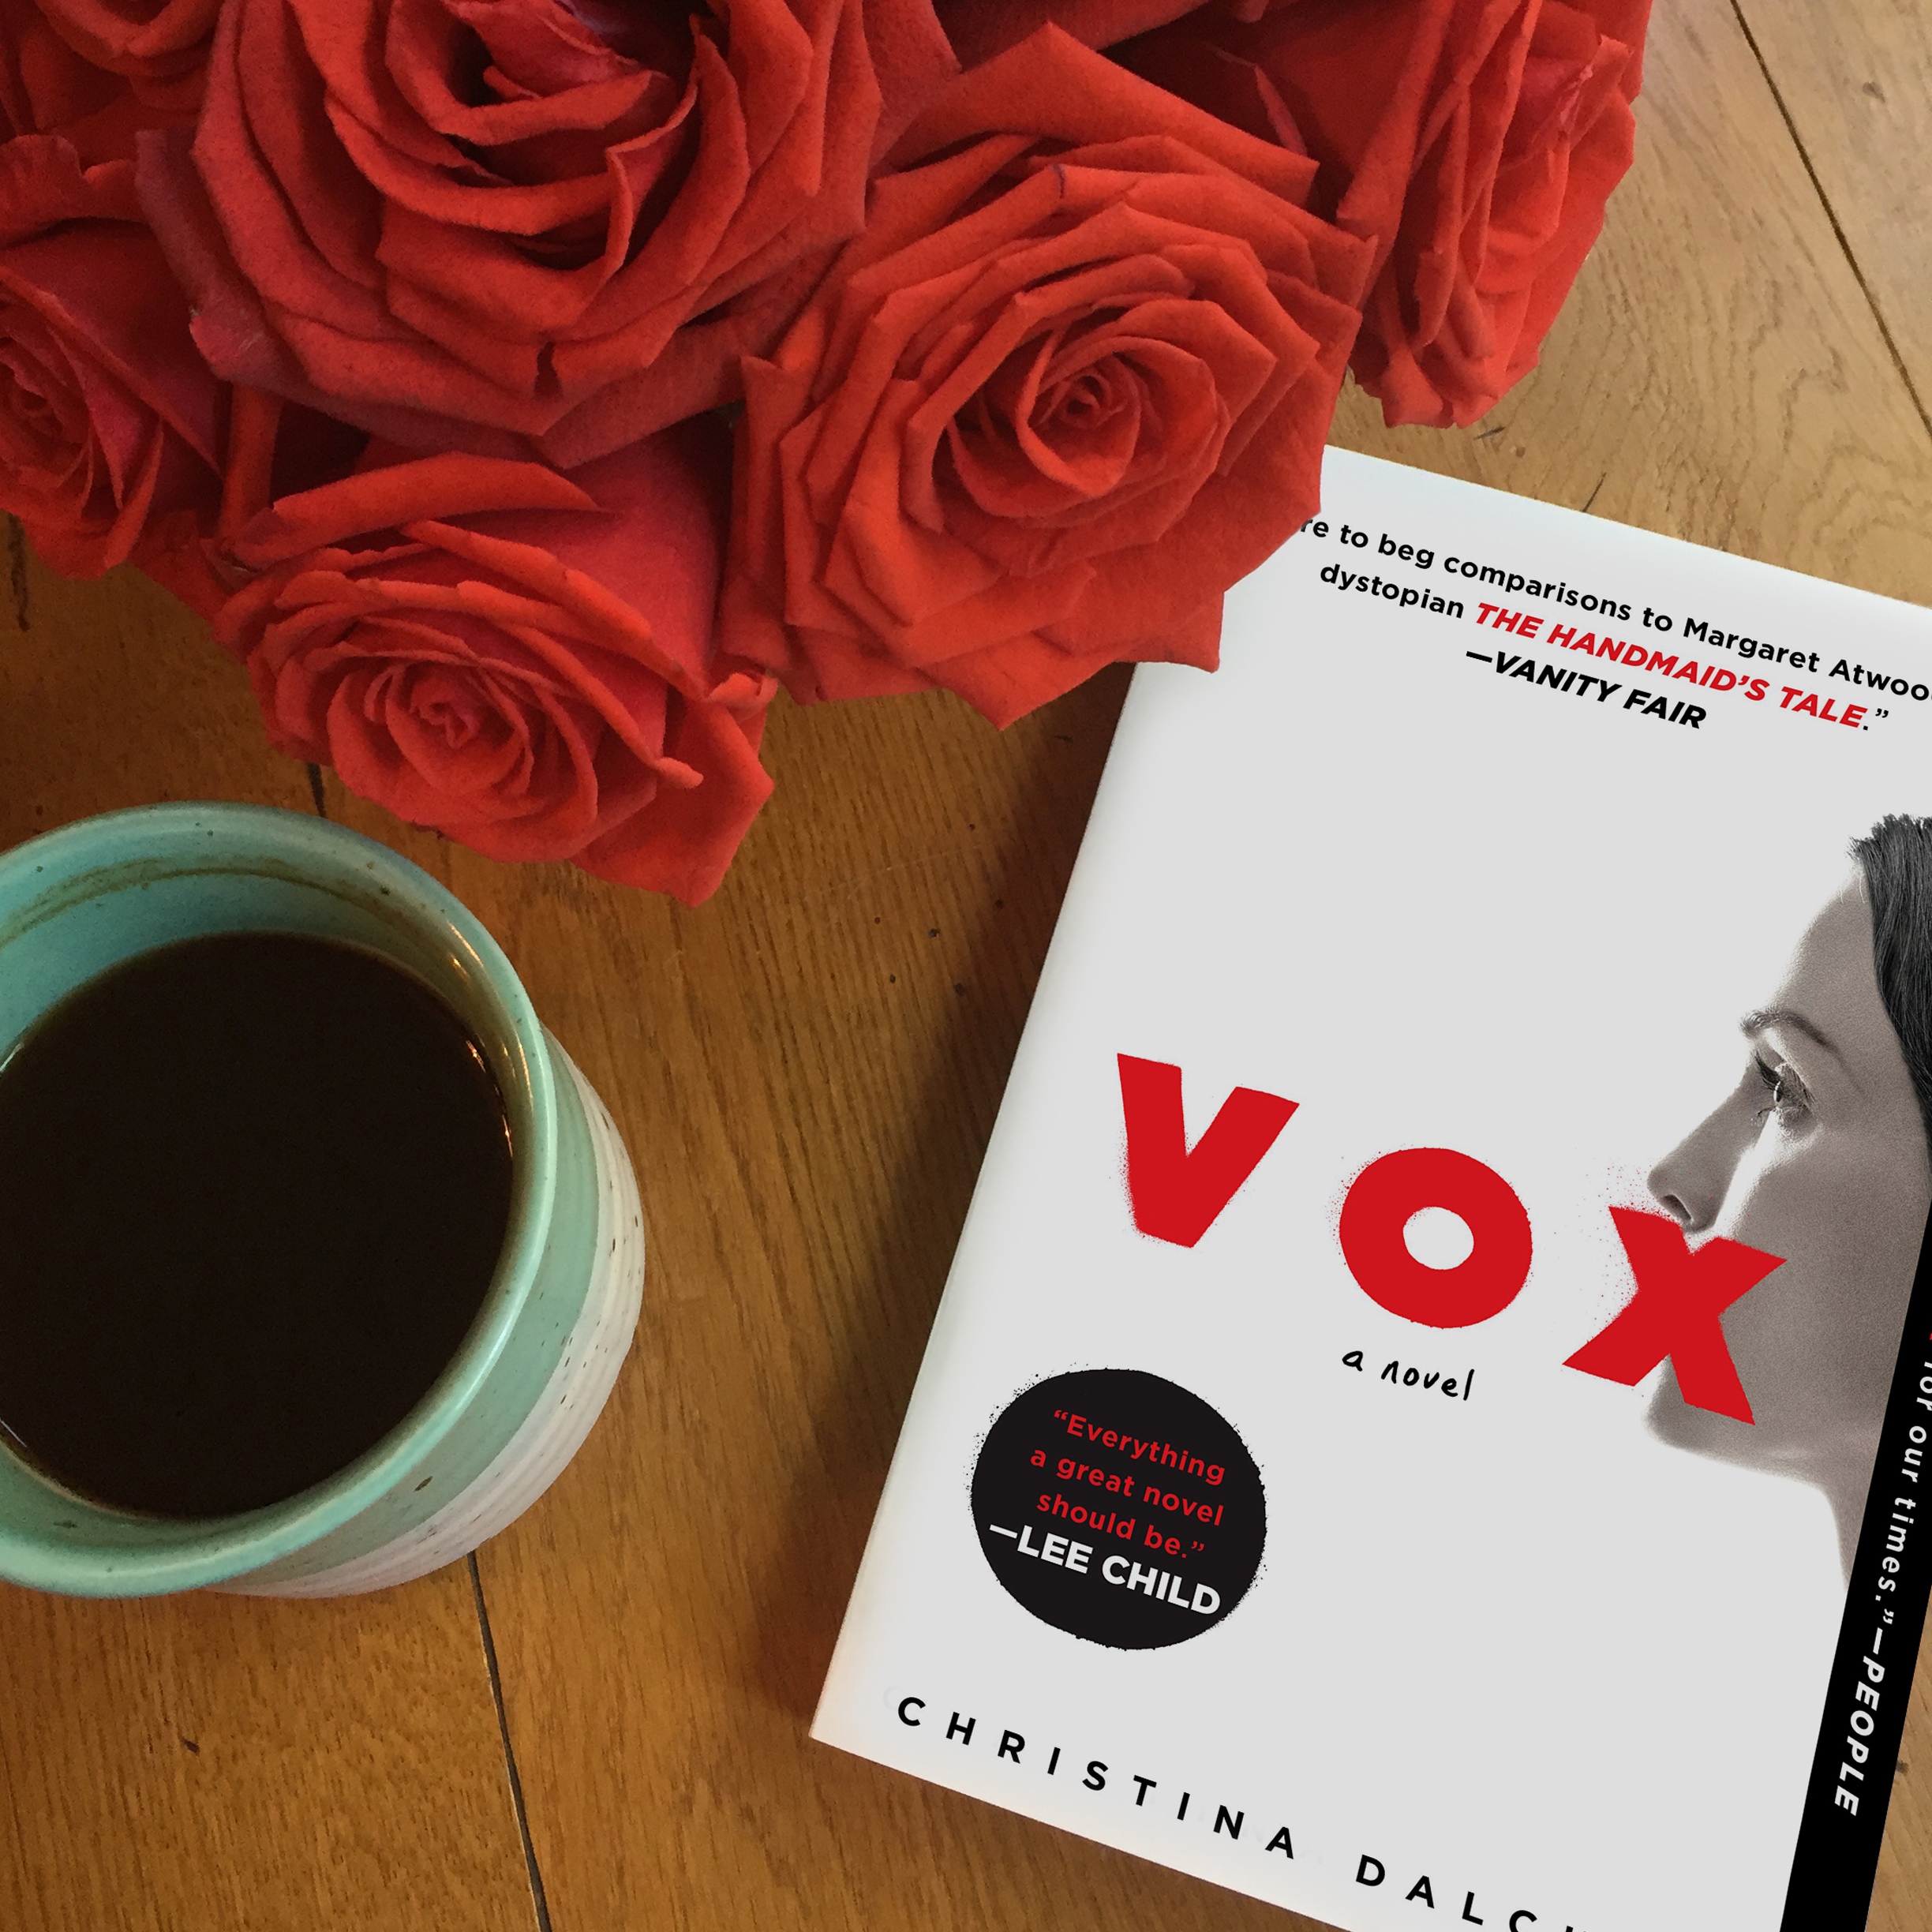 VOX by Christina Dalcher available in paperback!